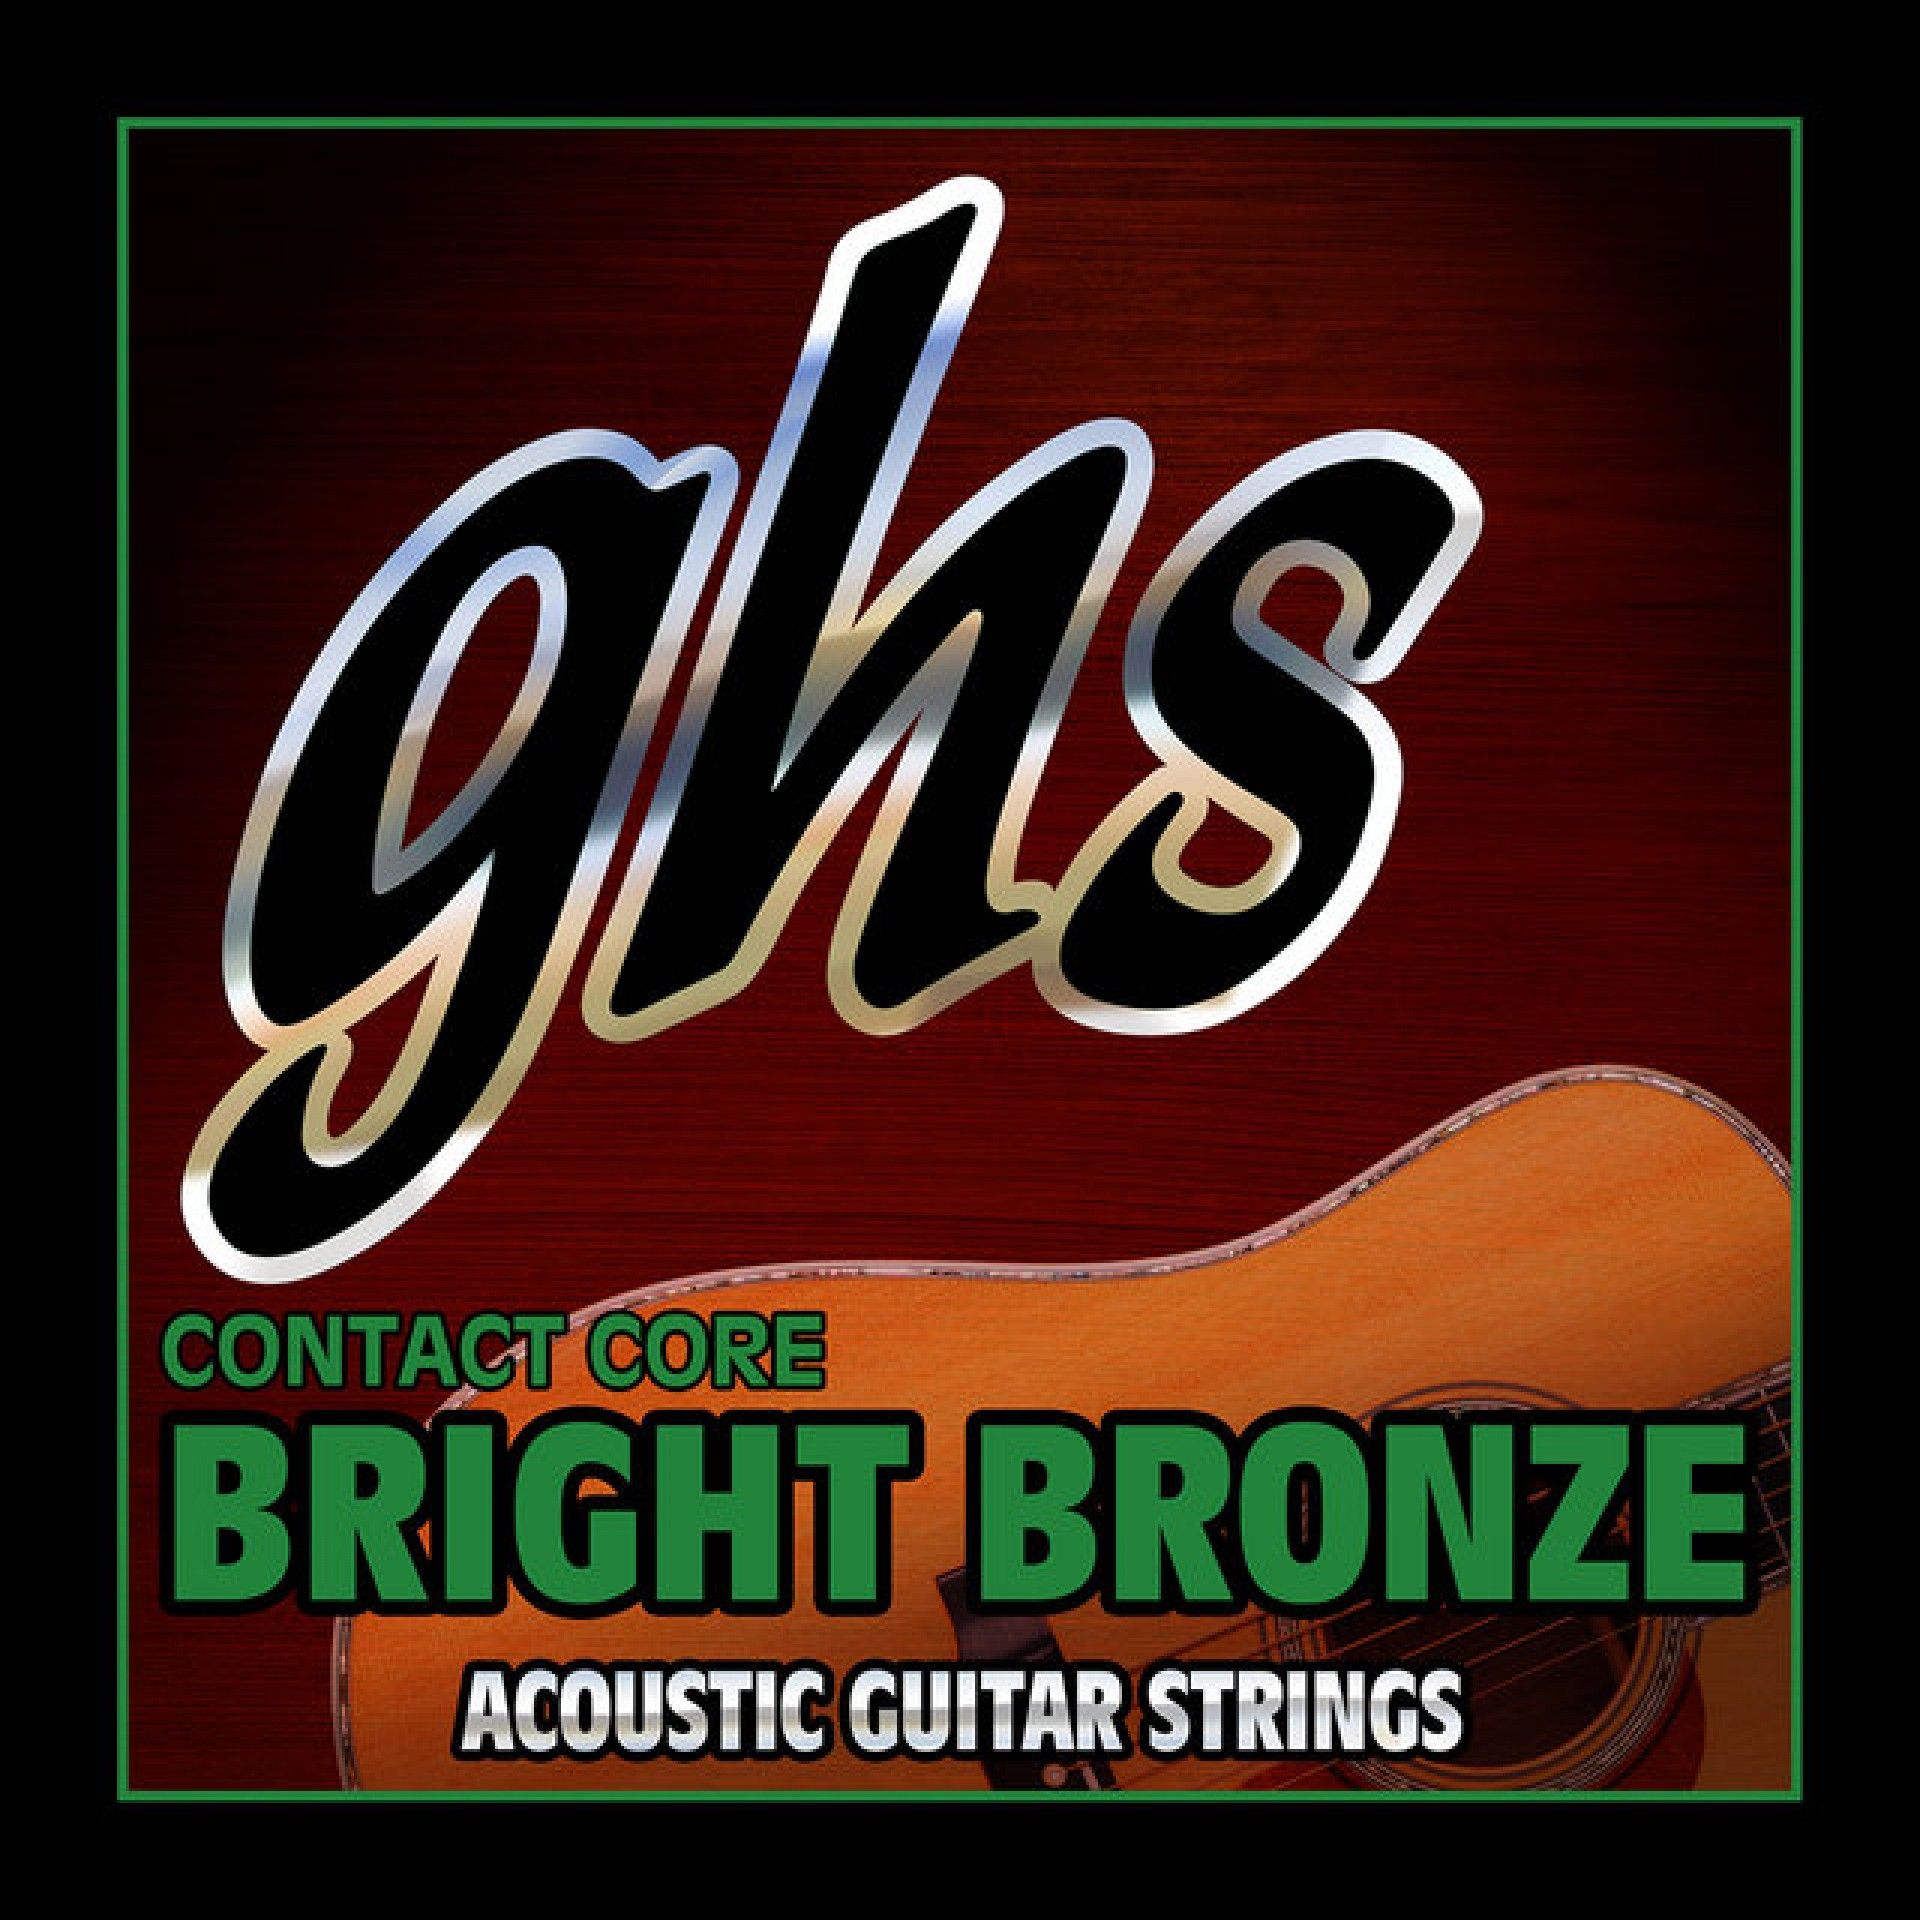 GHS CCBB20 CONTACT CORE BRIGHT BRONZE - Extra Light